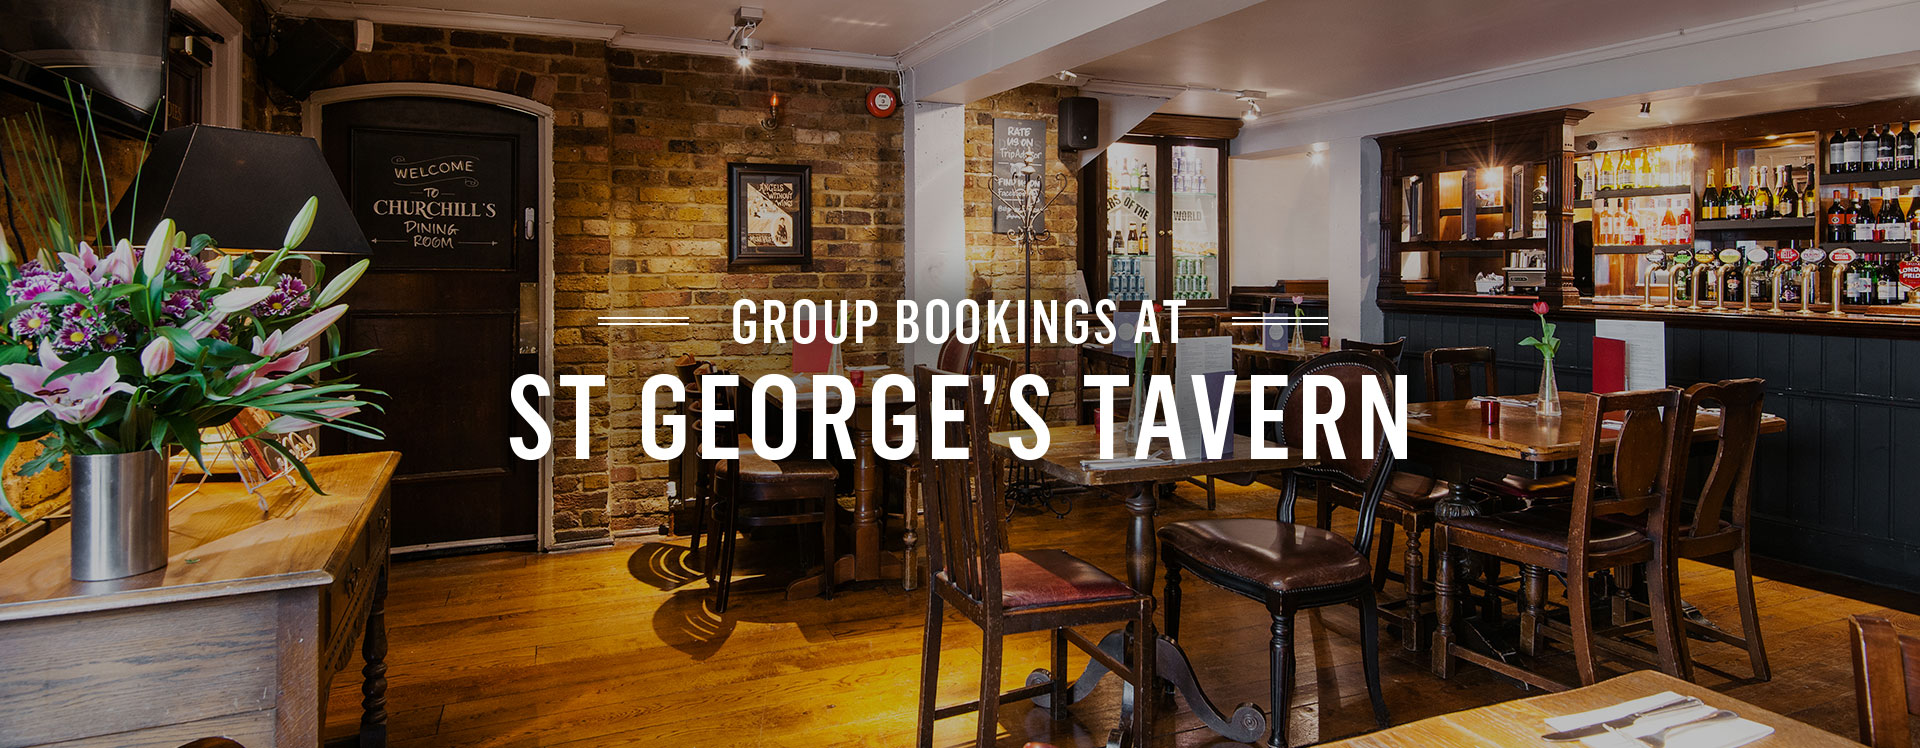 Group Bookings at The St George's Tavern